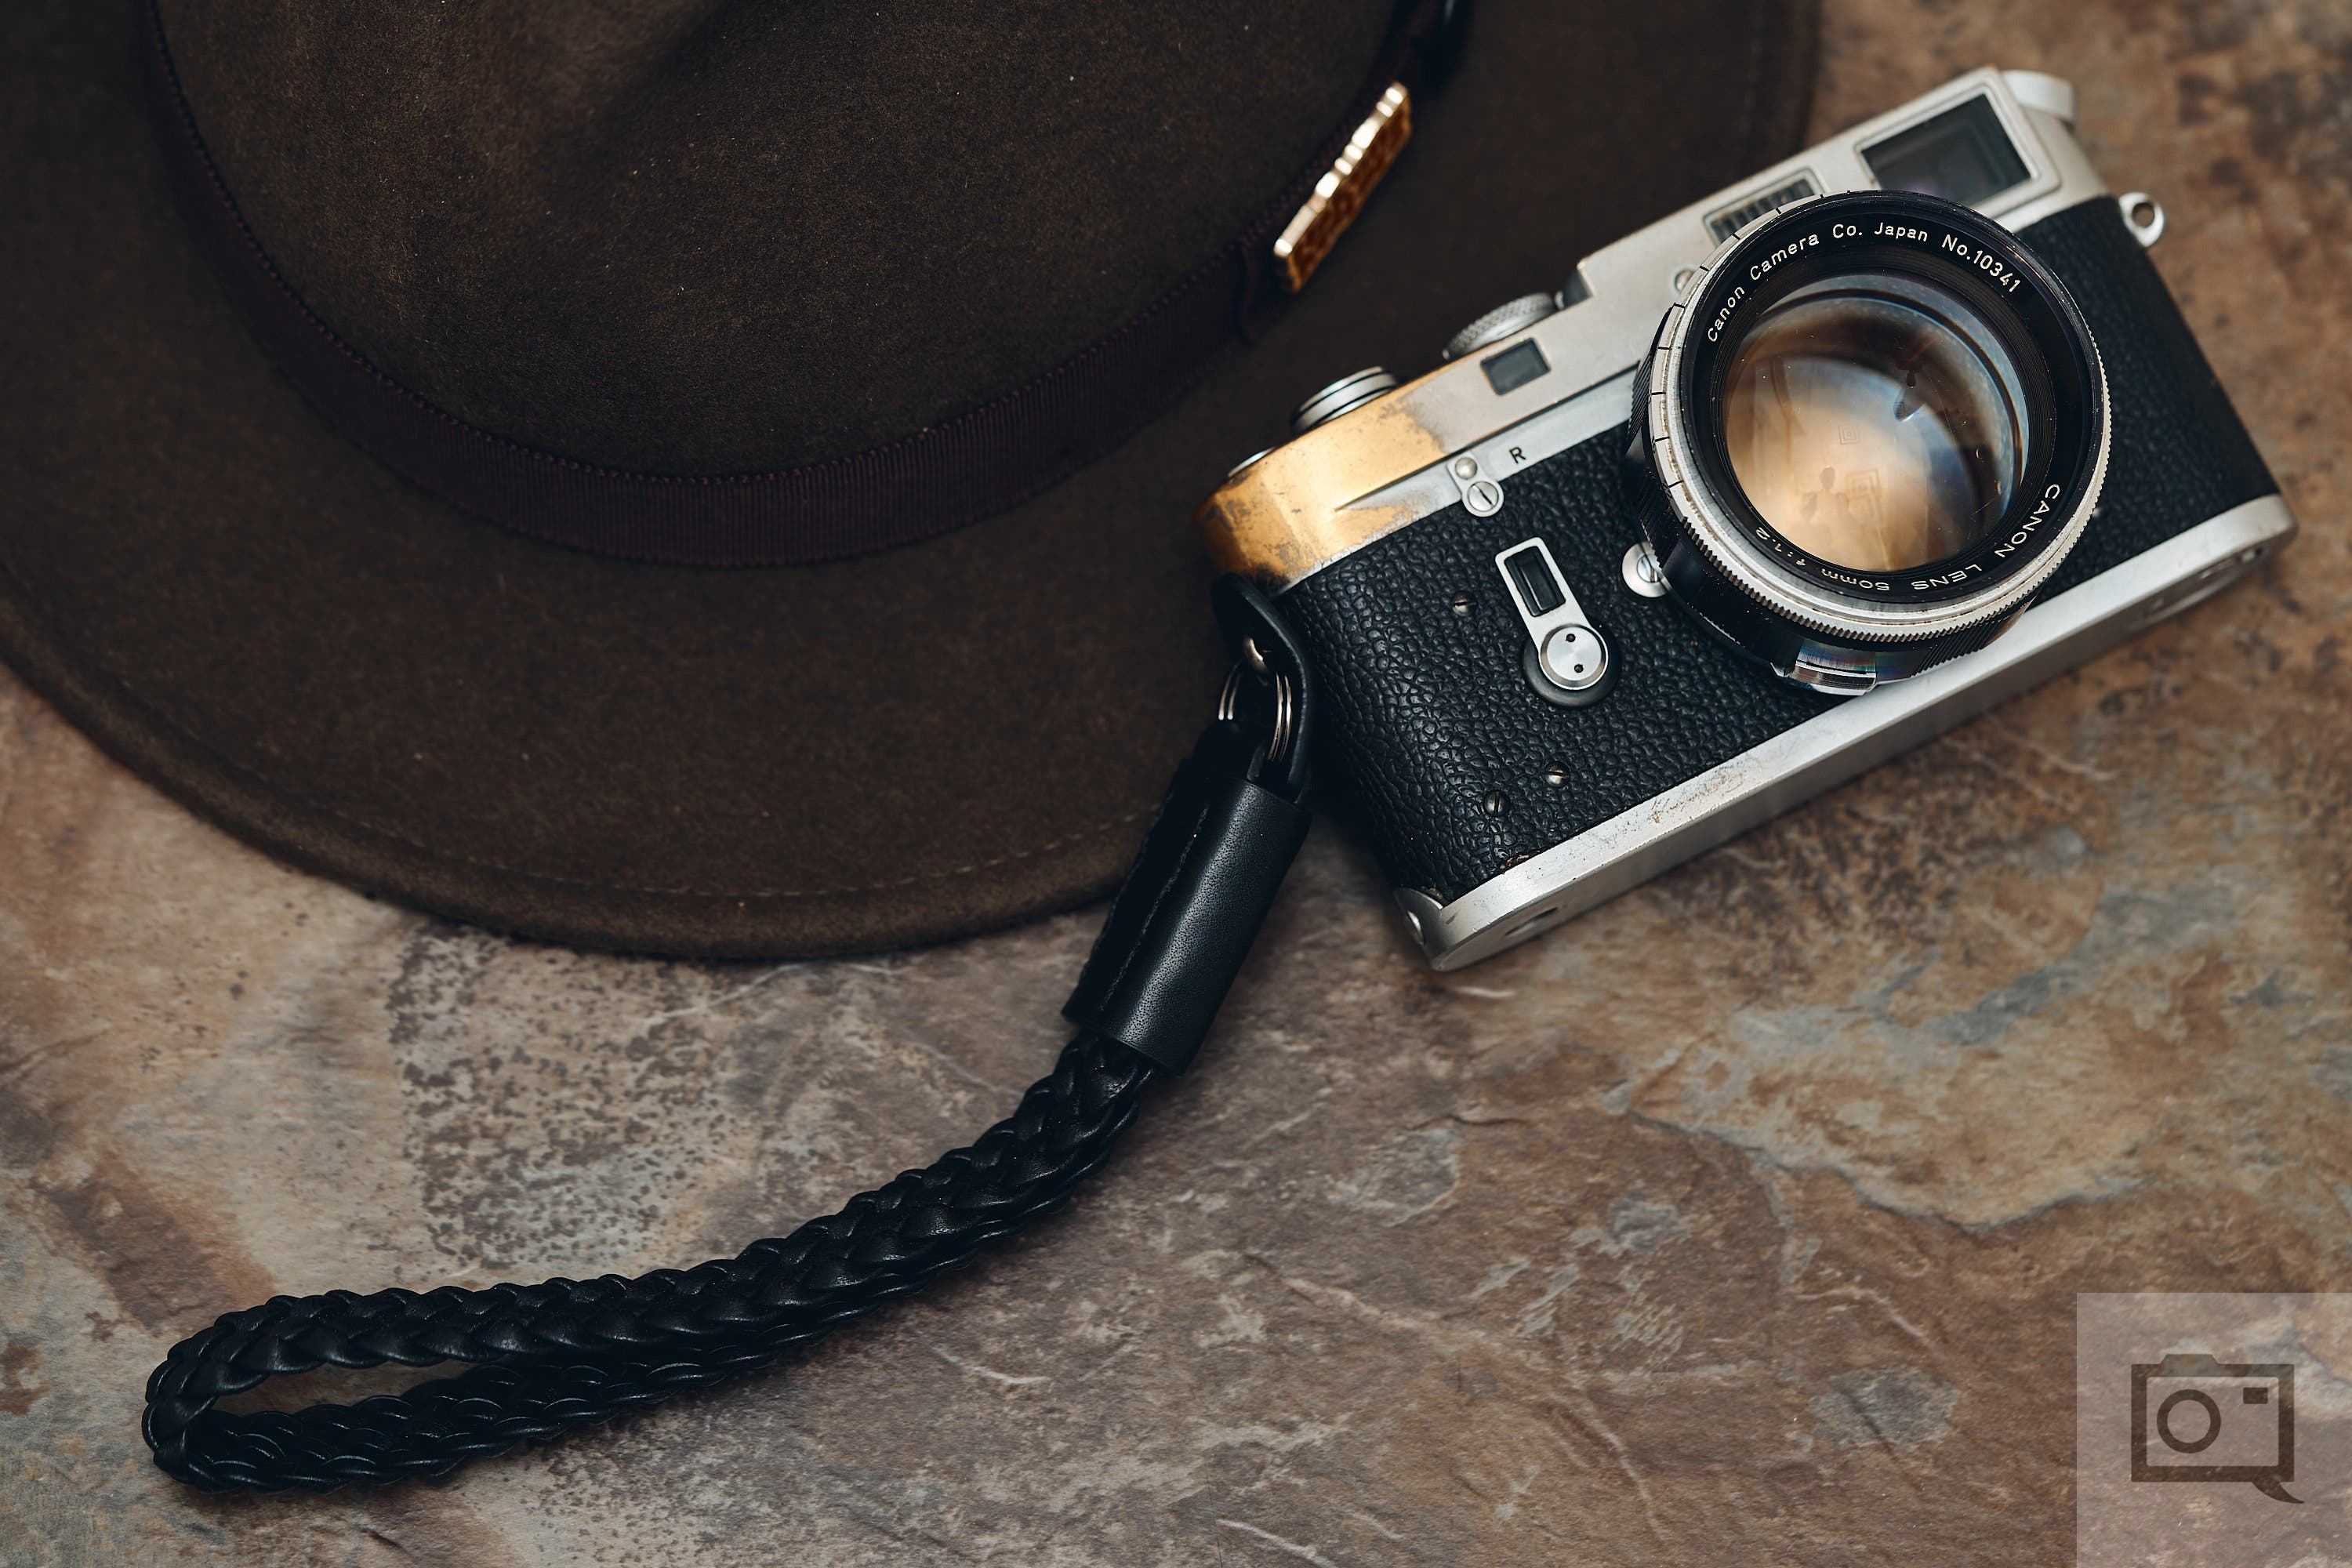 How To Save Money for Your Photography Passion